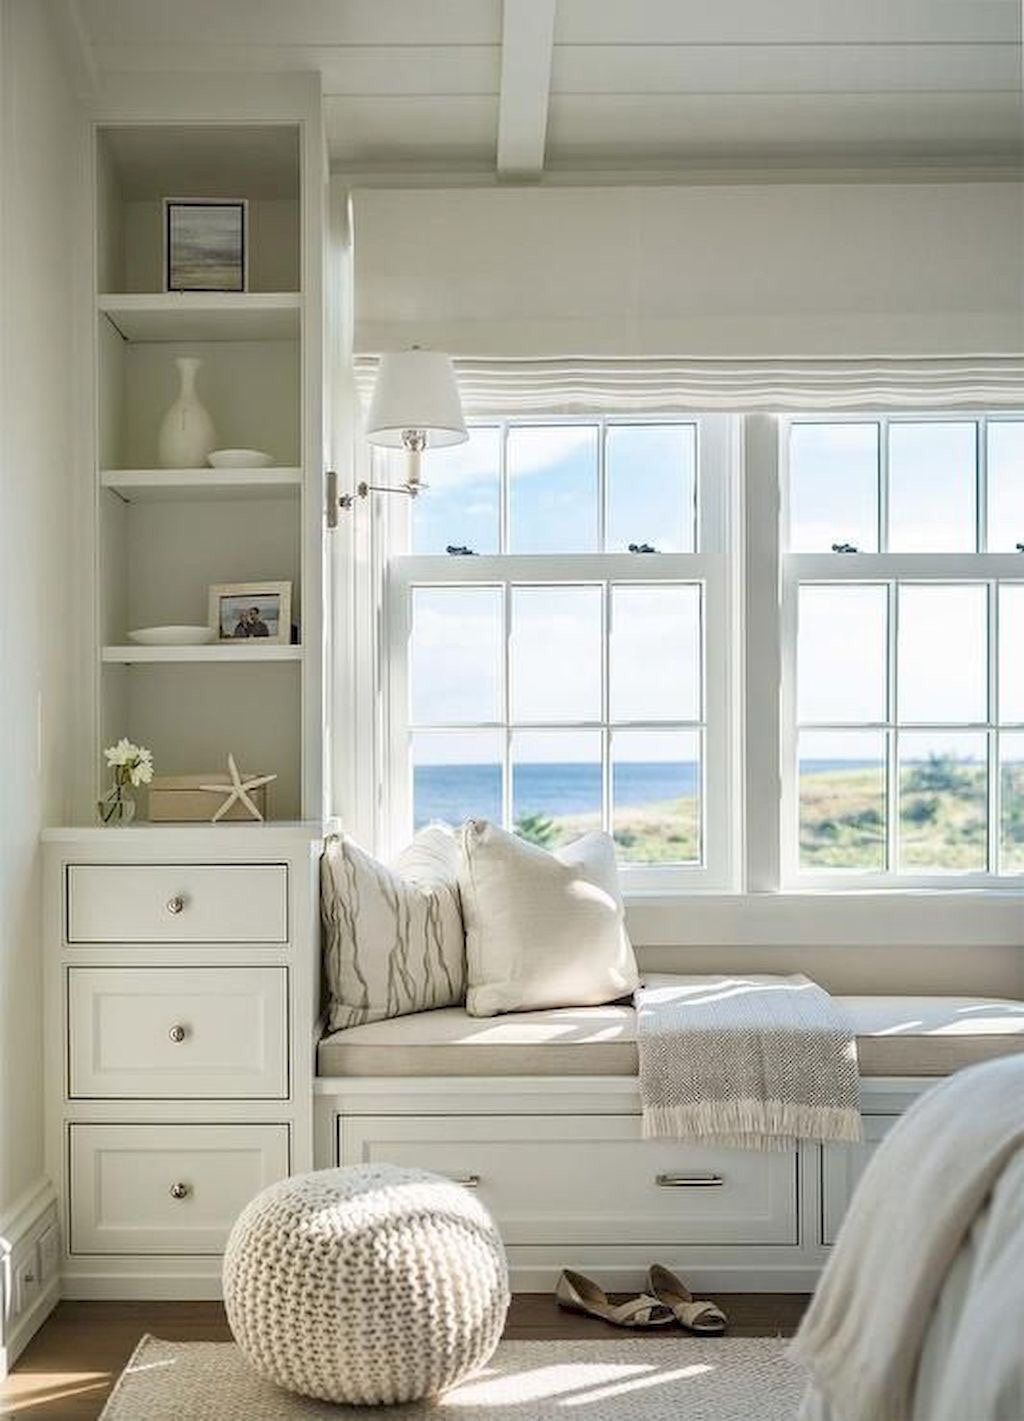 Sensational How To Create A Dreamy Window Seat Ocoug Best Dining Table And Chair Ideas Images Ocougorg